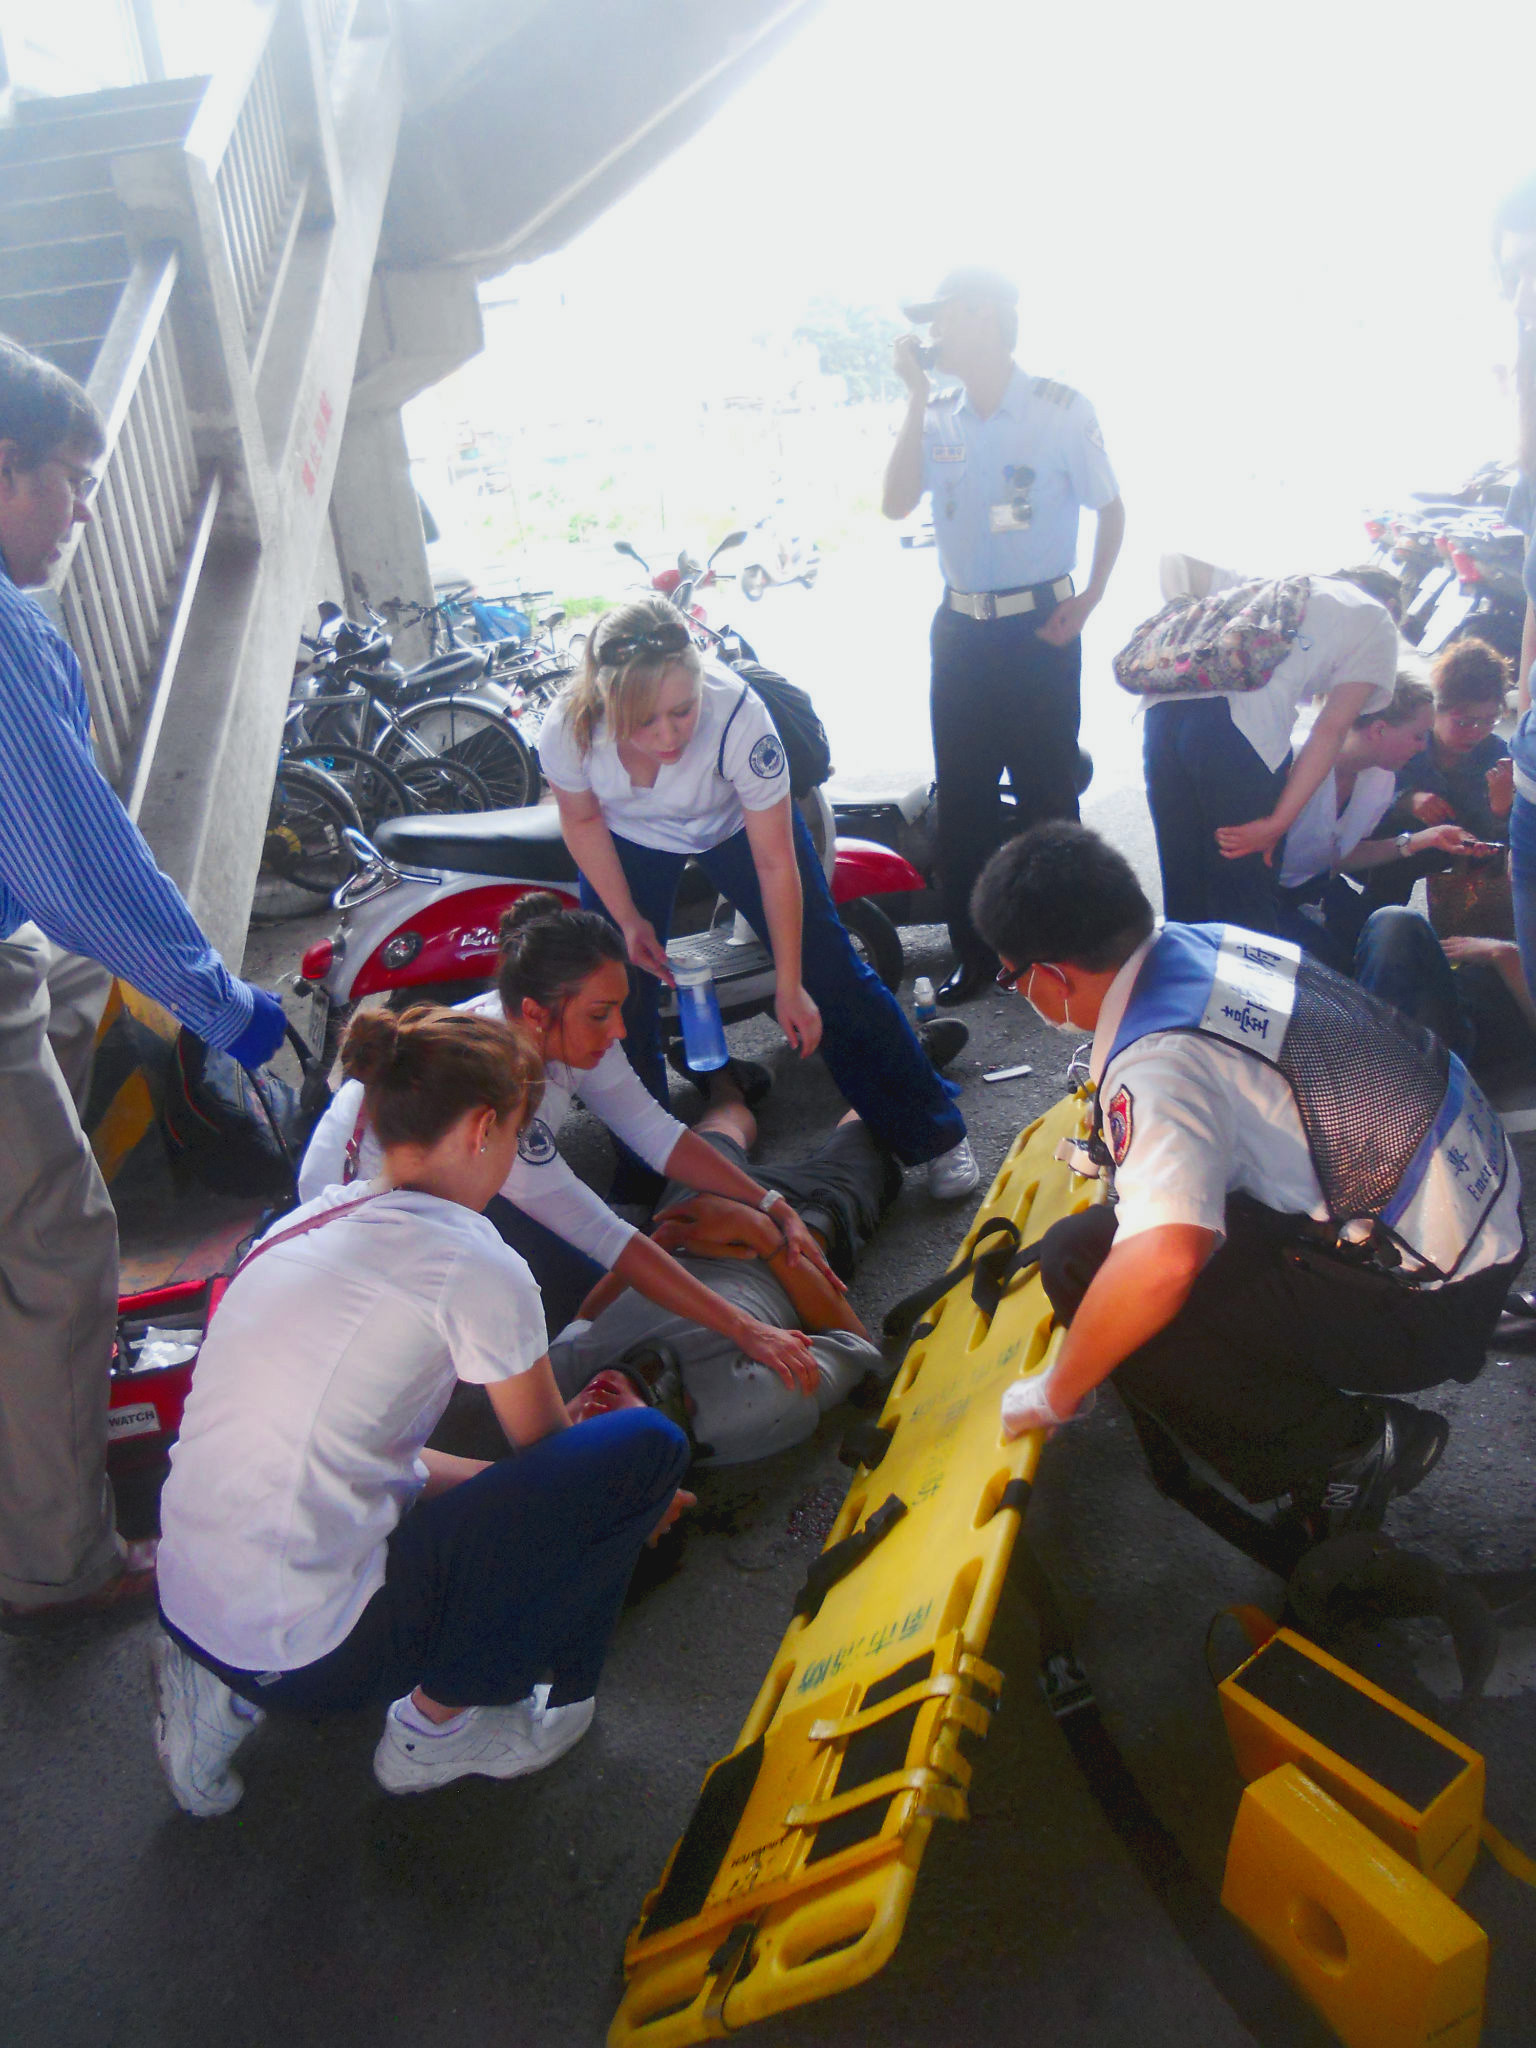 Student nurses assisting EMS team in Taiwan